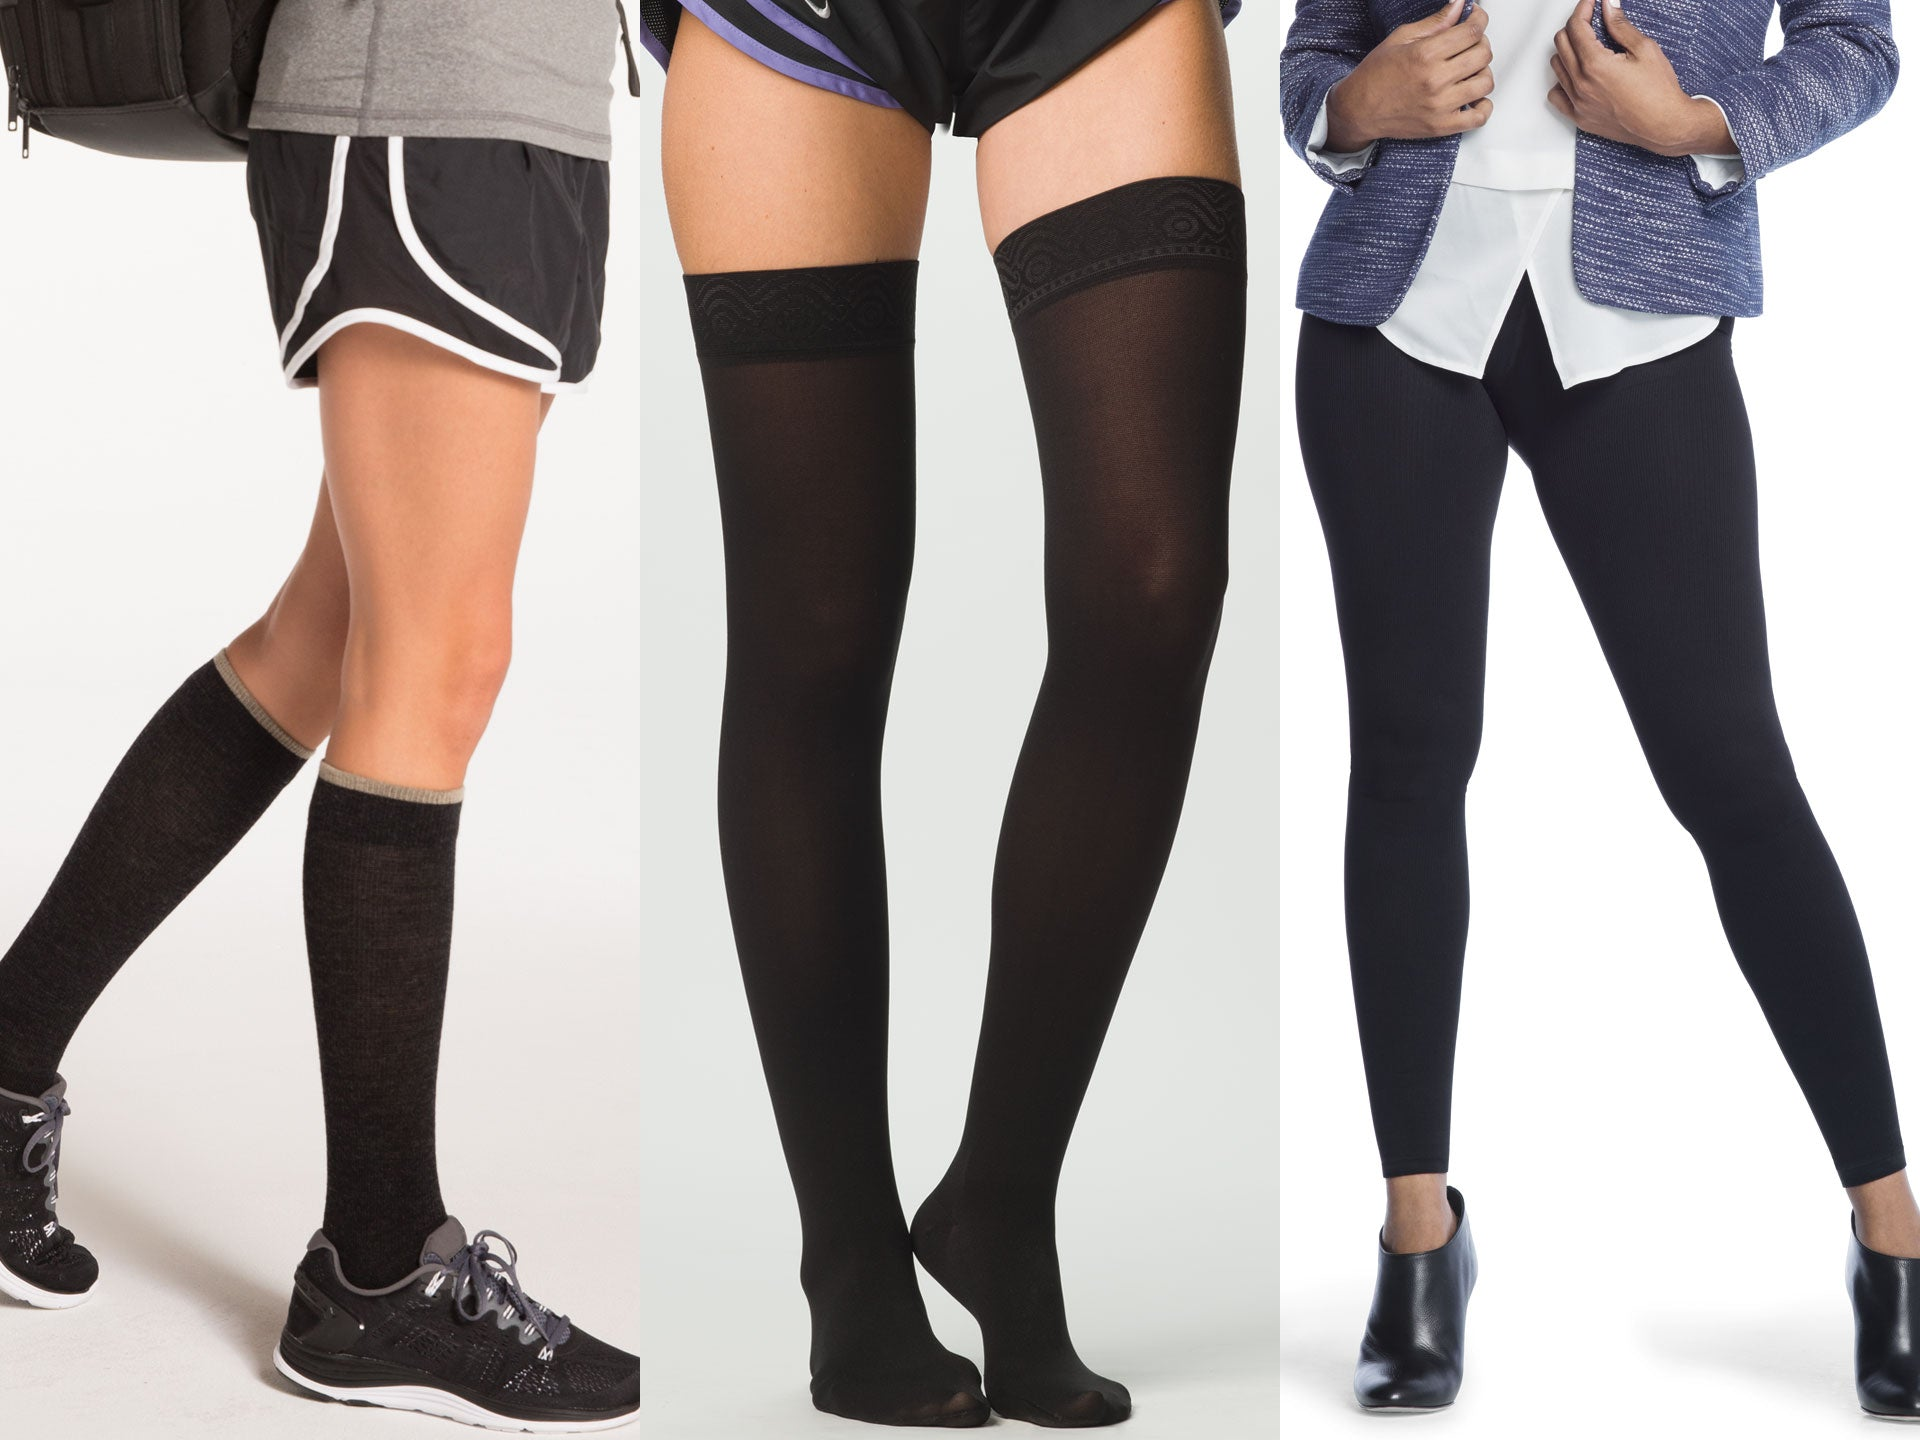 Knee high, thigh high, and pantyhose styles of compression socks and stockings